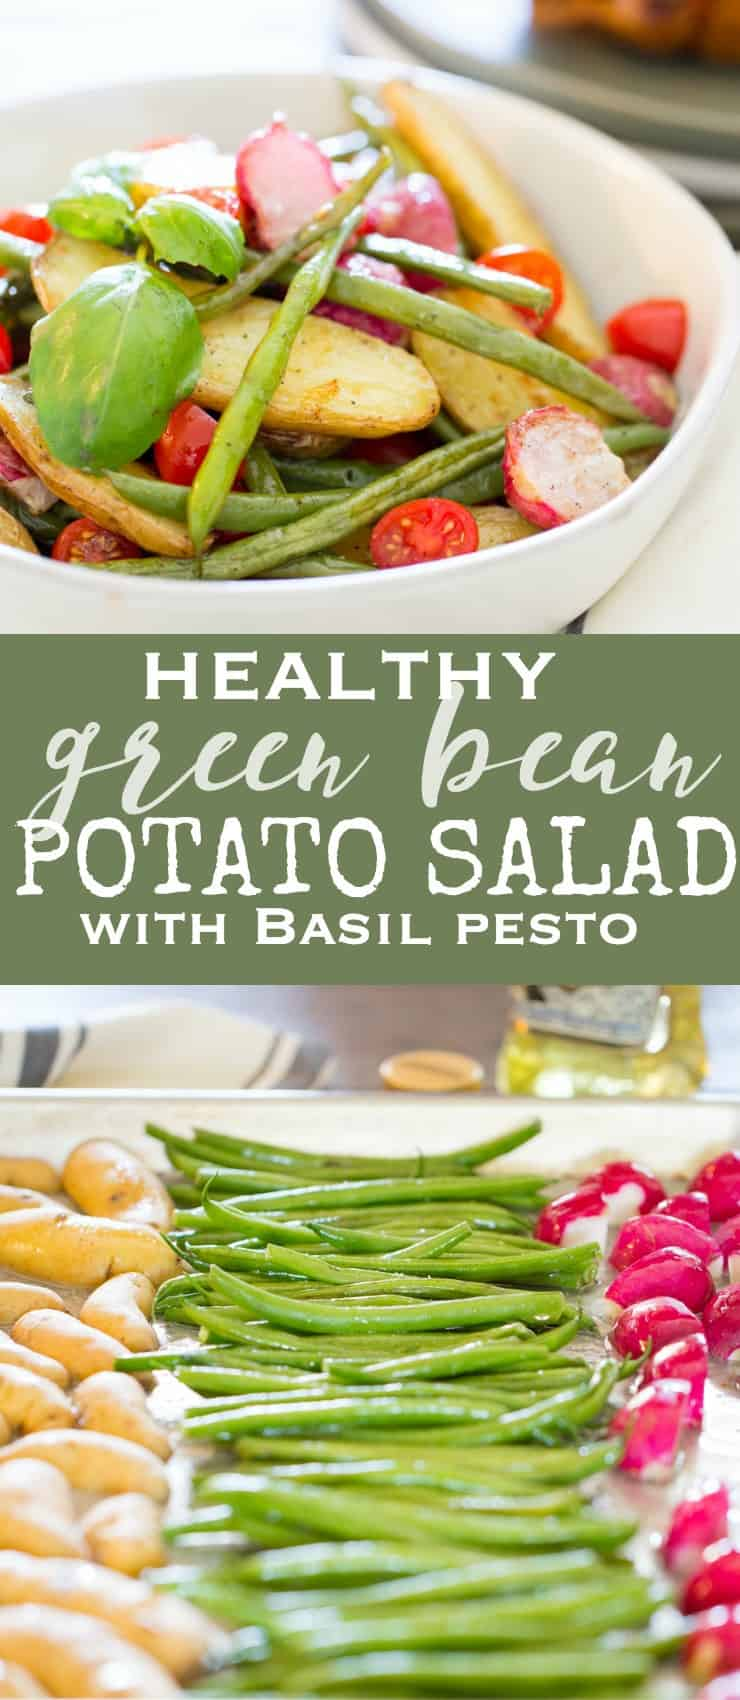 healthy potato salad recipe with green beans and basil pesto